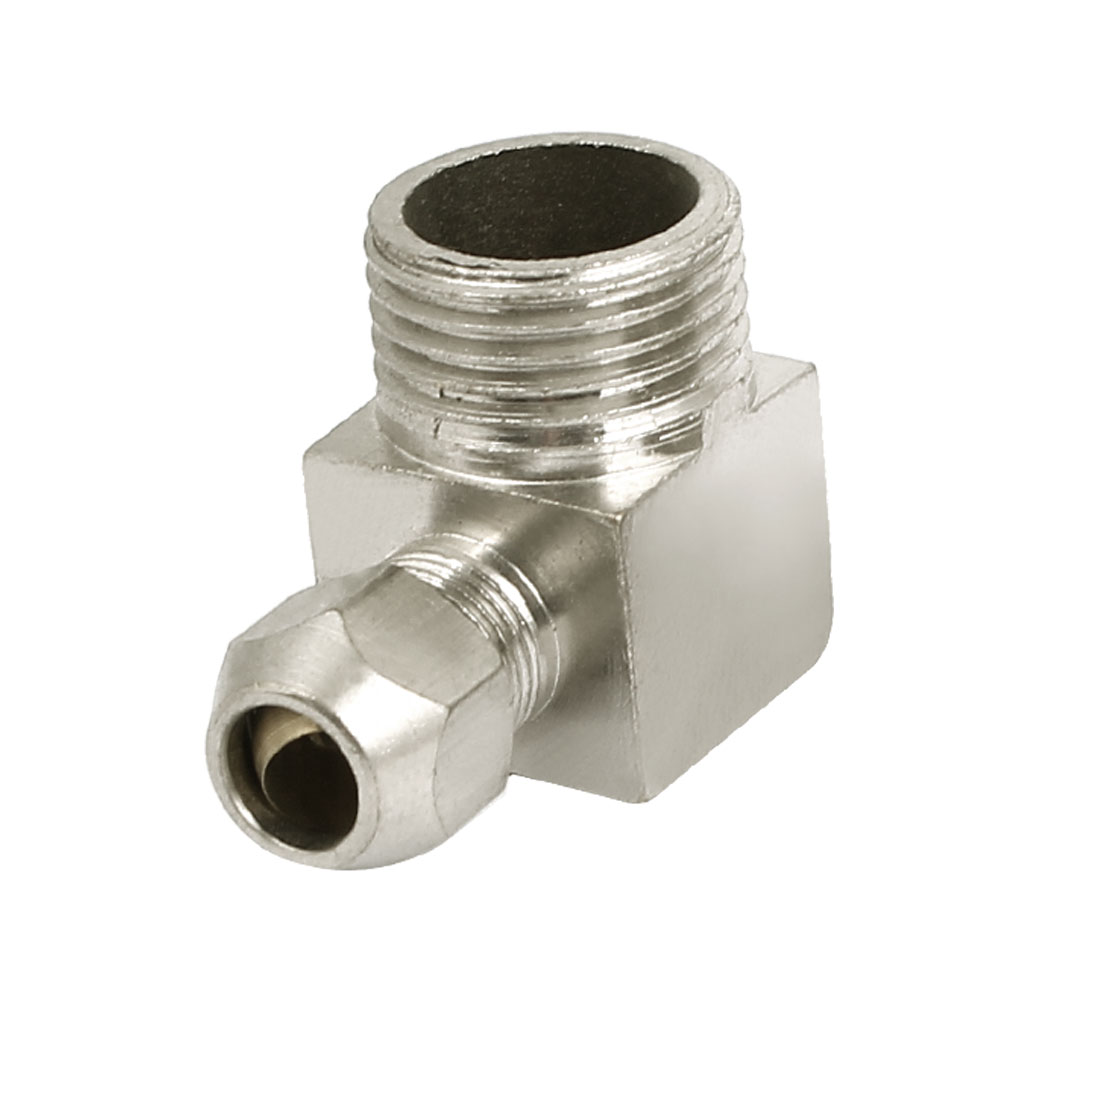 1/2BSP Male Thread L Type Quick Release Coupler Fitting Connector Silver Tone